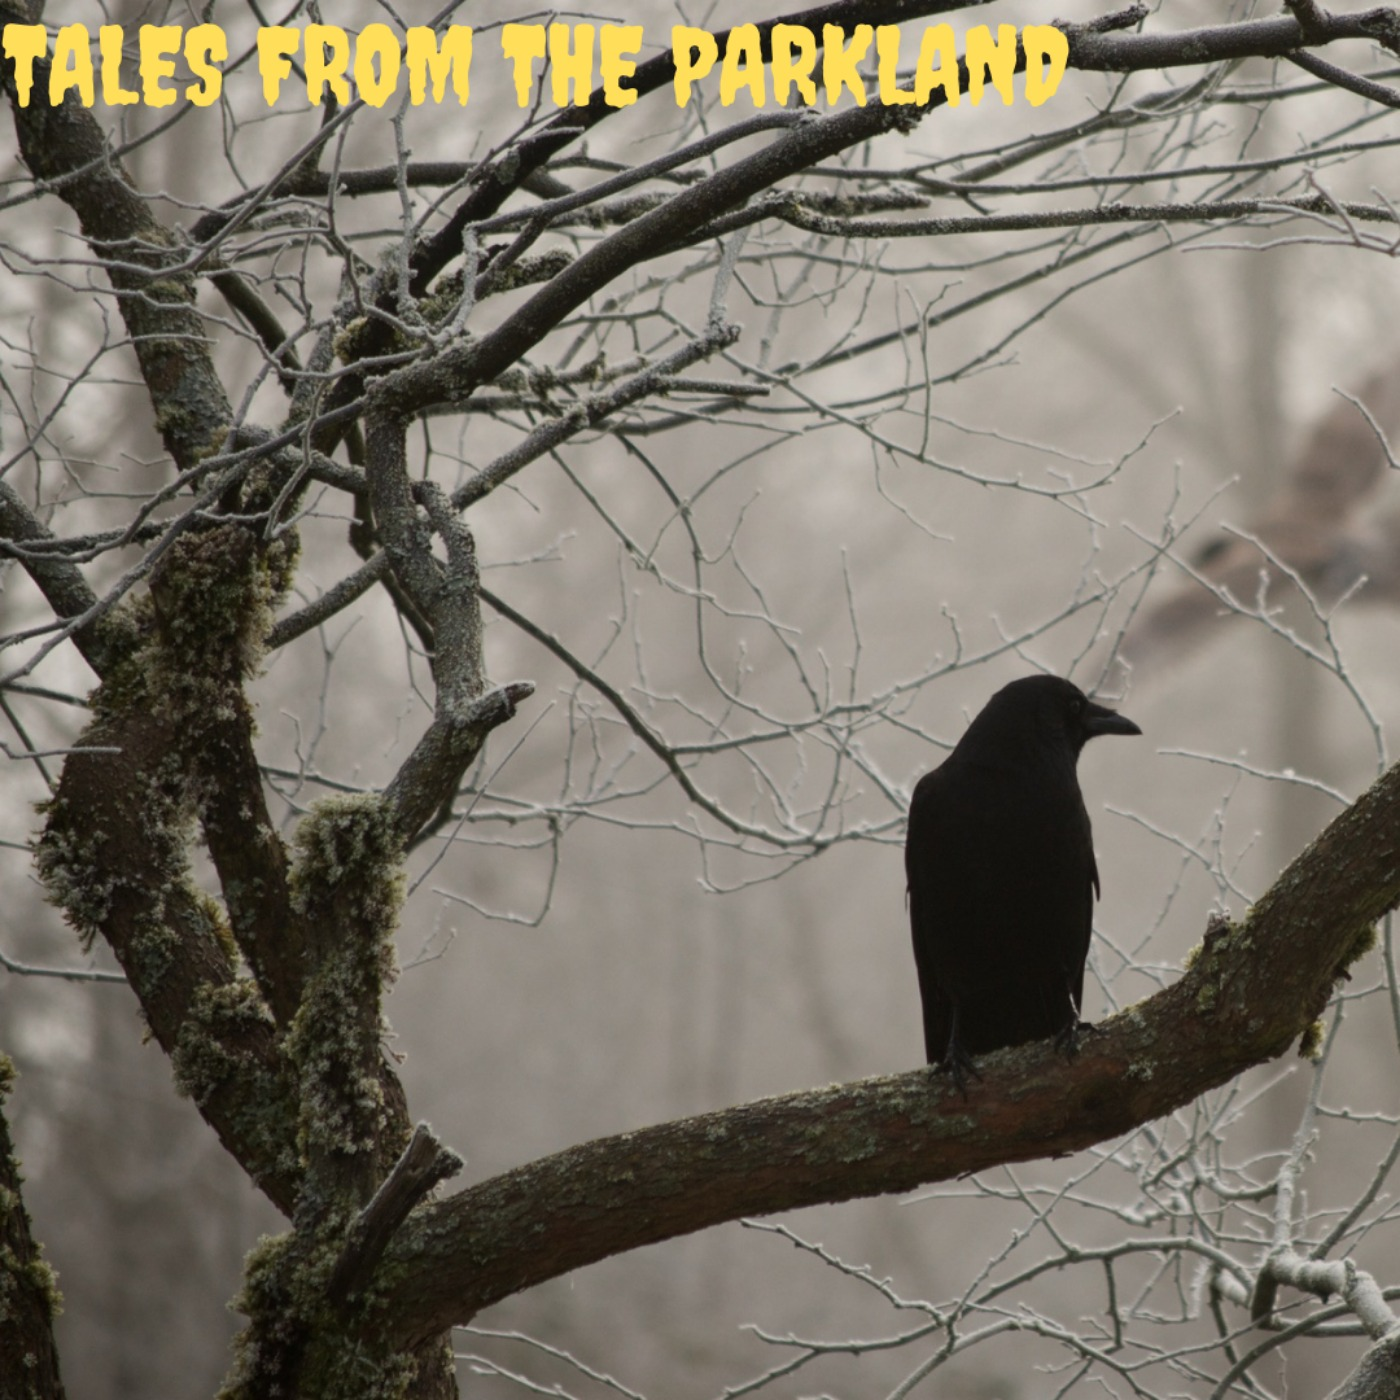 Ron McGillvray - Tales from the Parkland